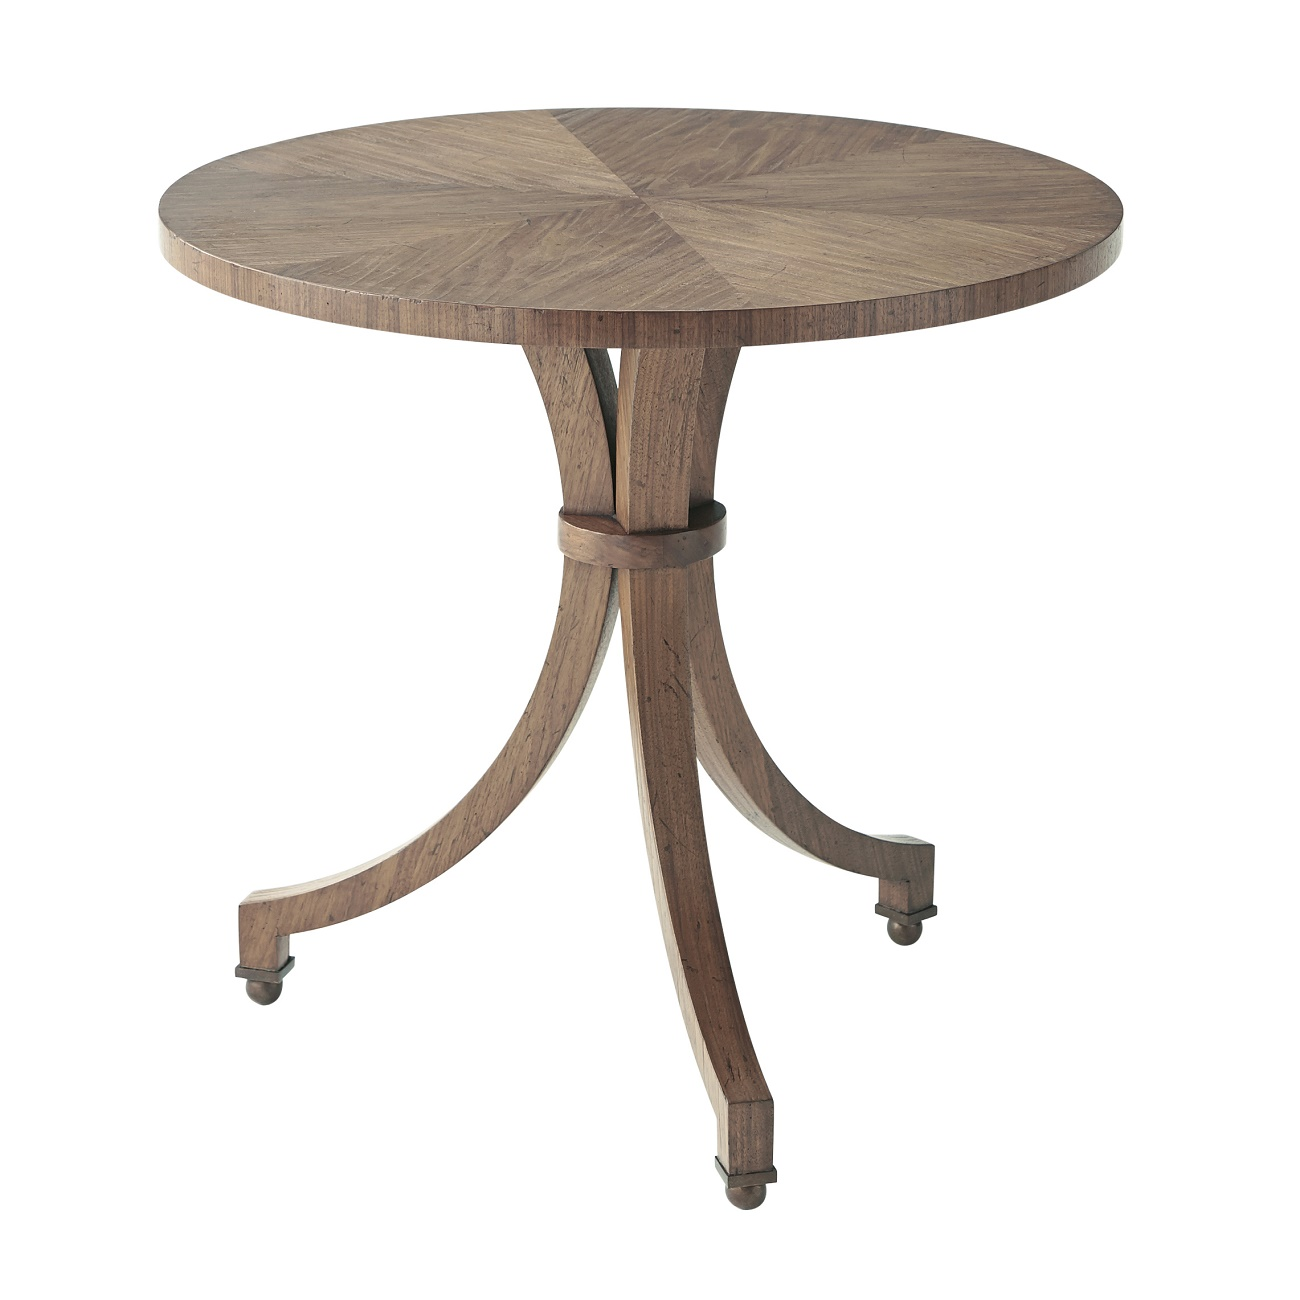 5005 903 Dolores Park Accent Table theodore alexander